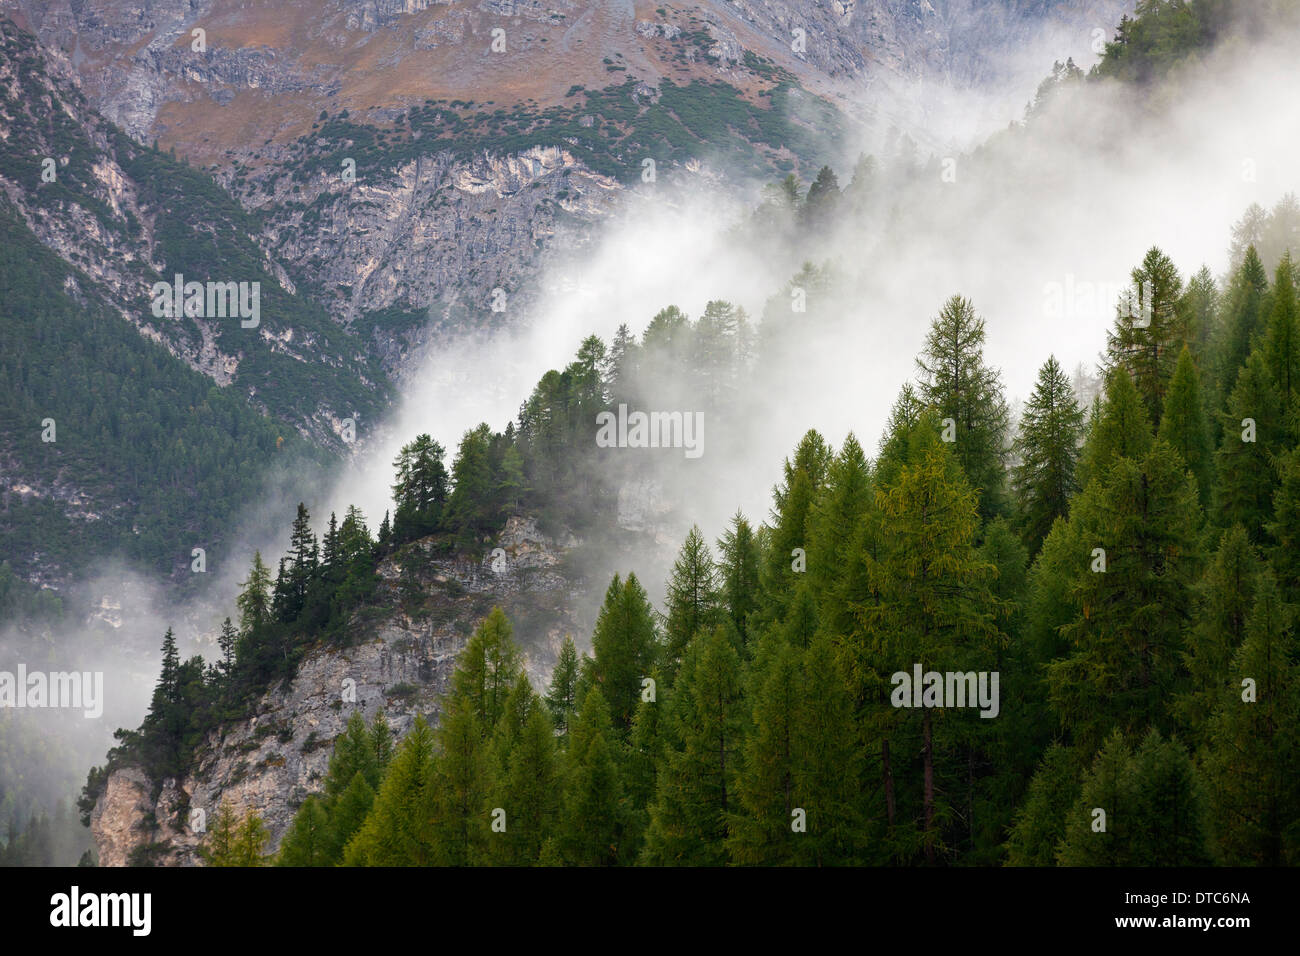 Fog over coniferous forest in the mountains at Val Mingèr, Swiss National Park at Graubünden / Grisons in the Alps, Switzerland - Stock Image